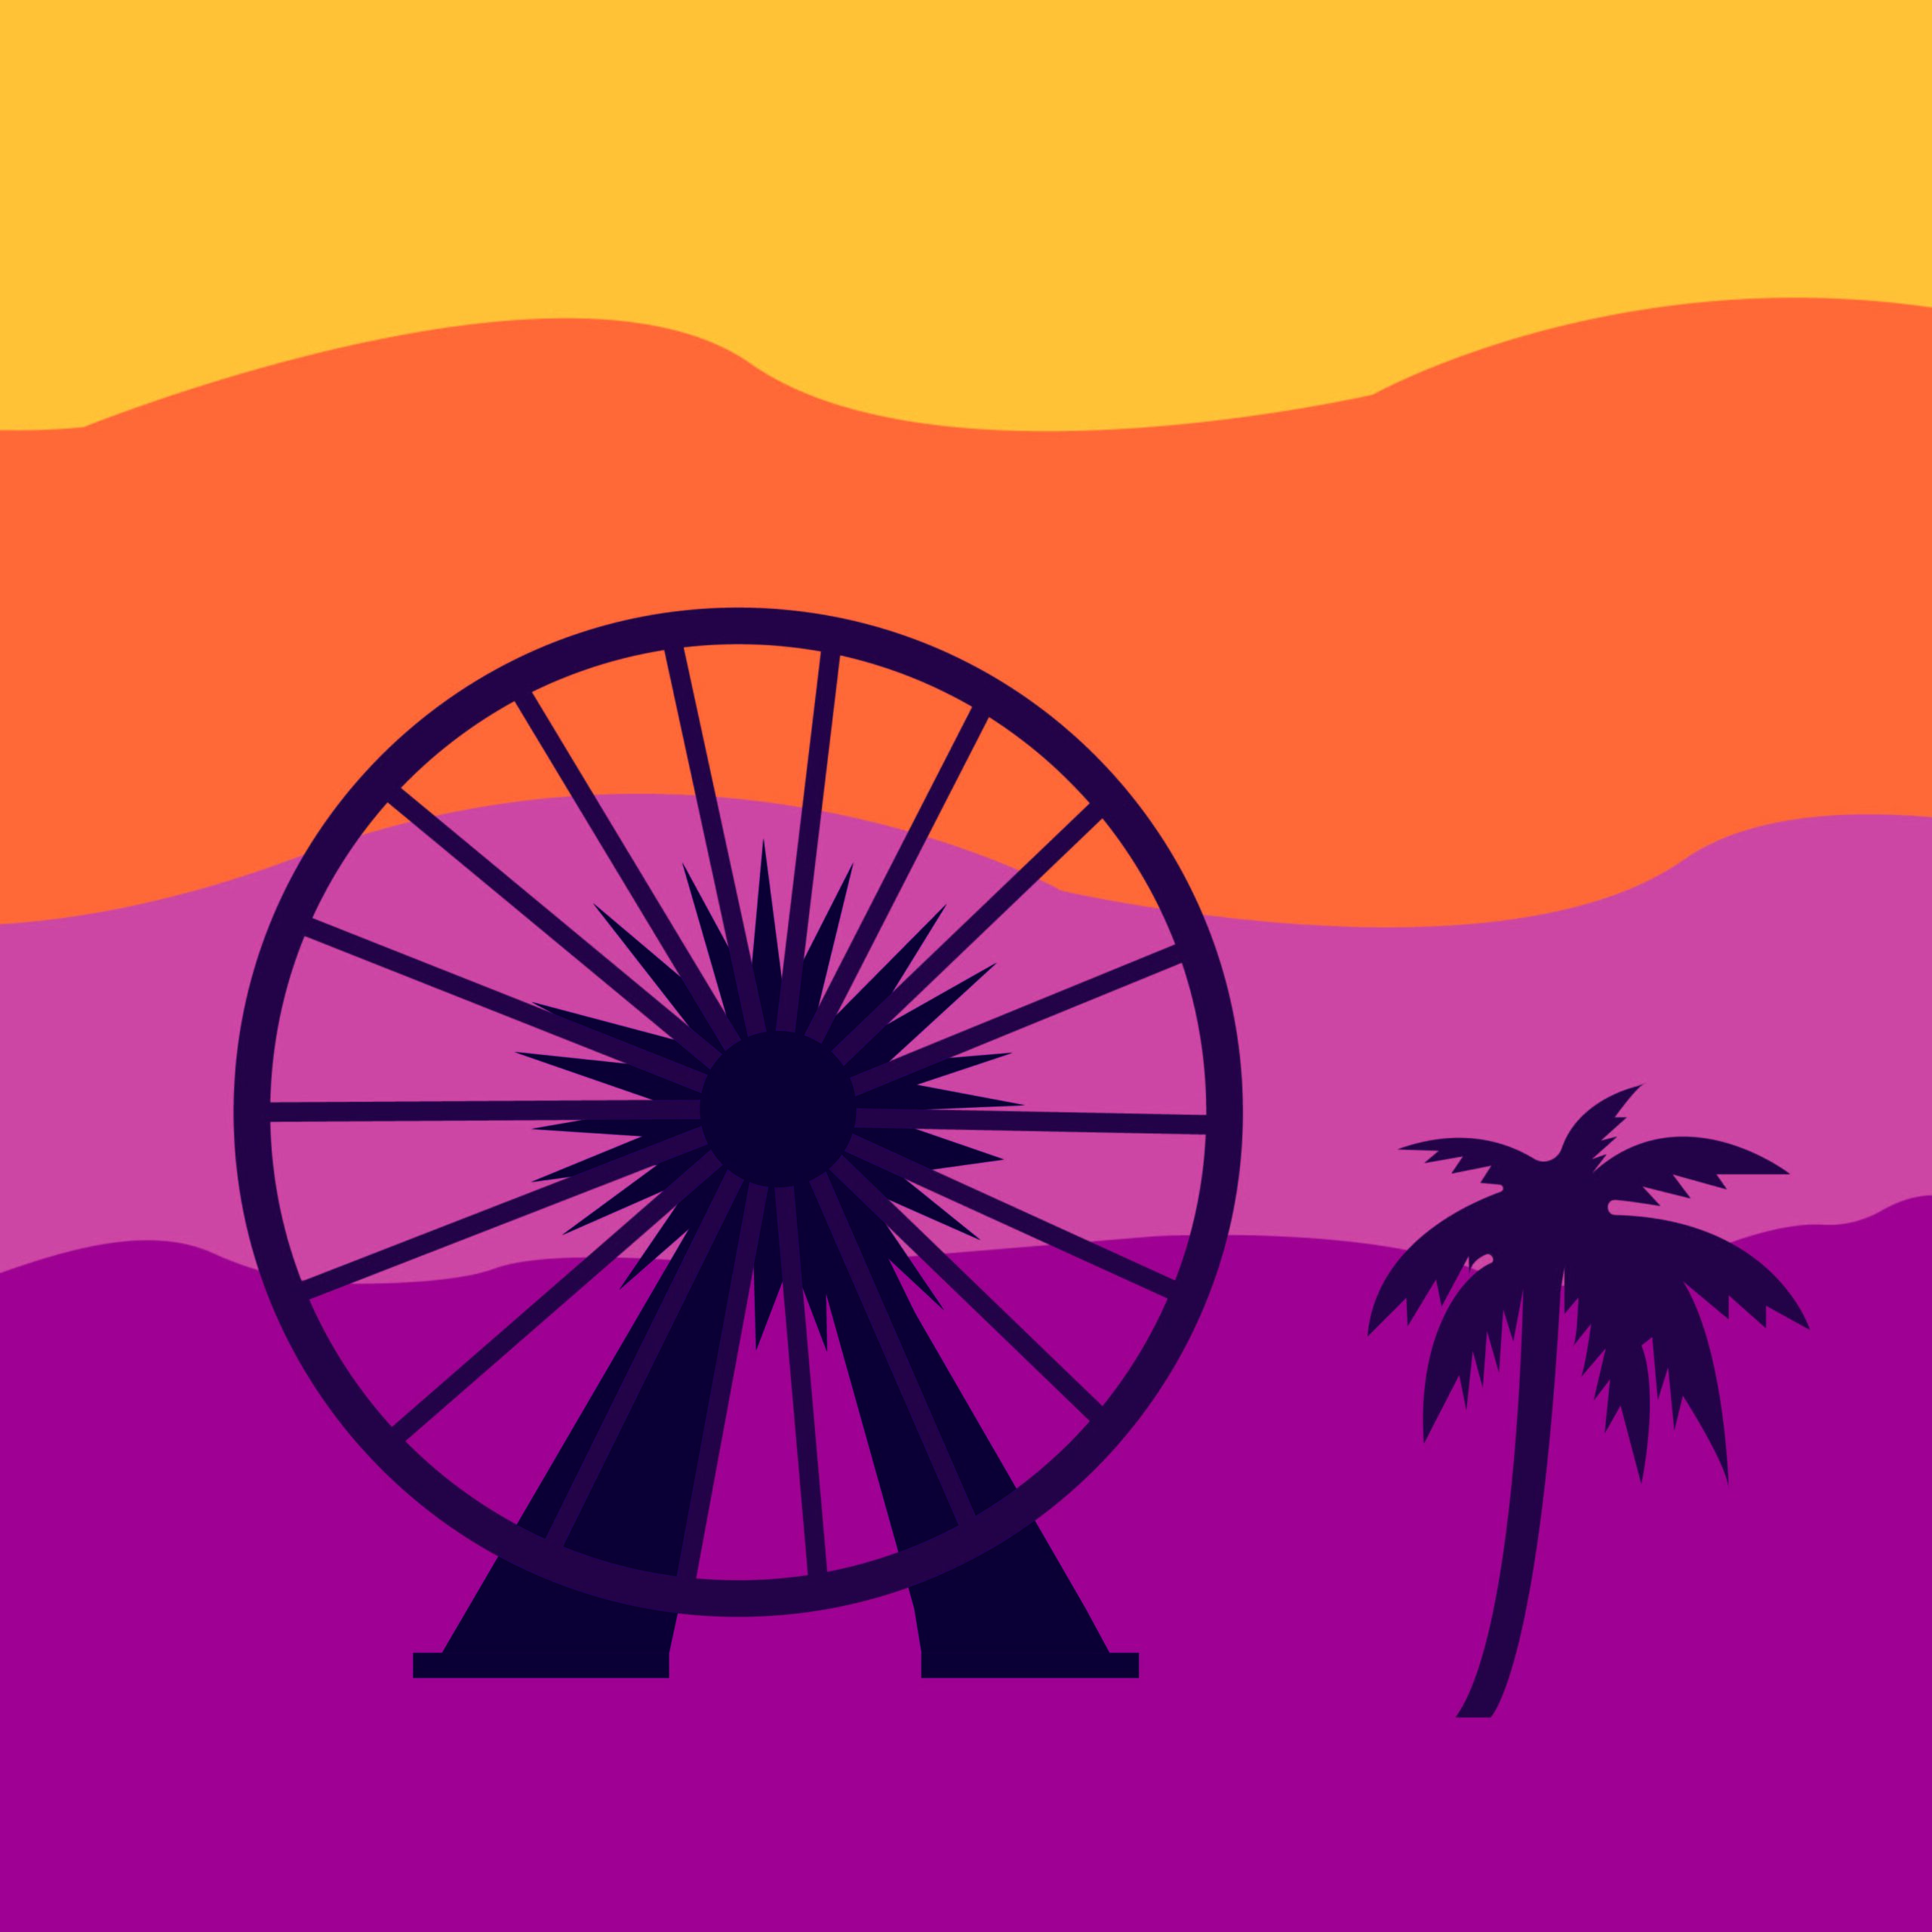 Coachella illustration for 360 magazine